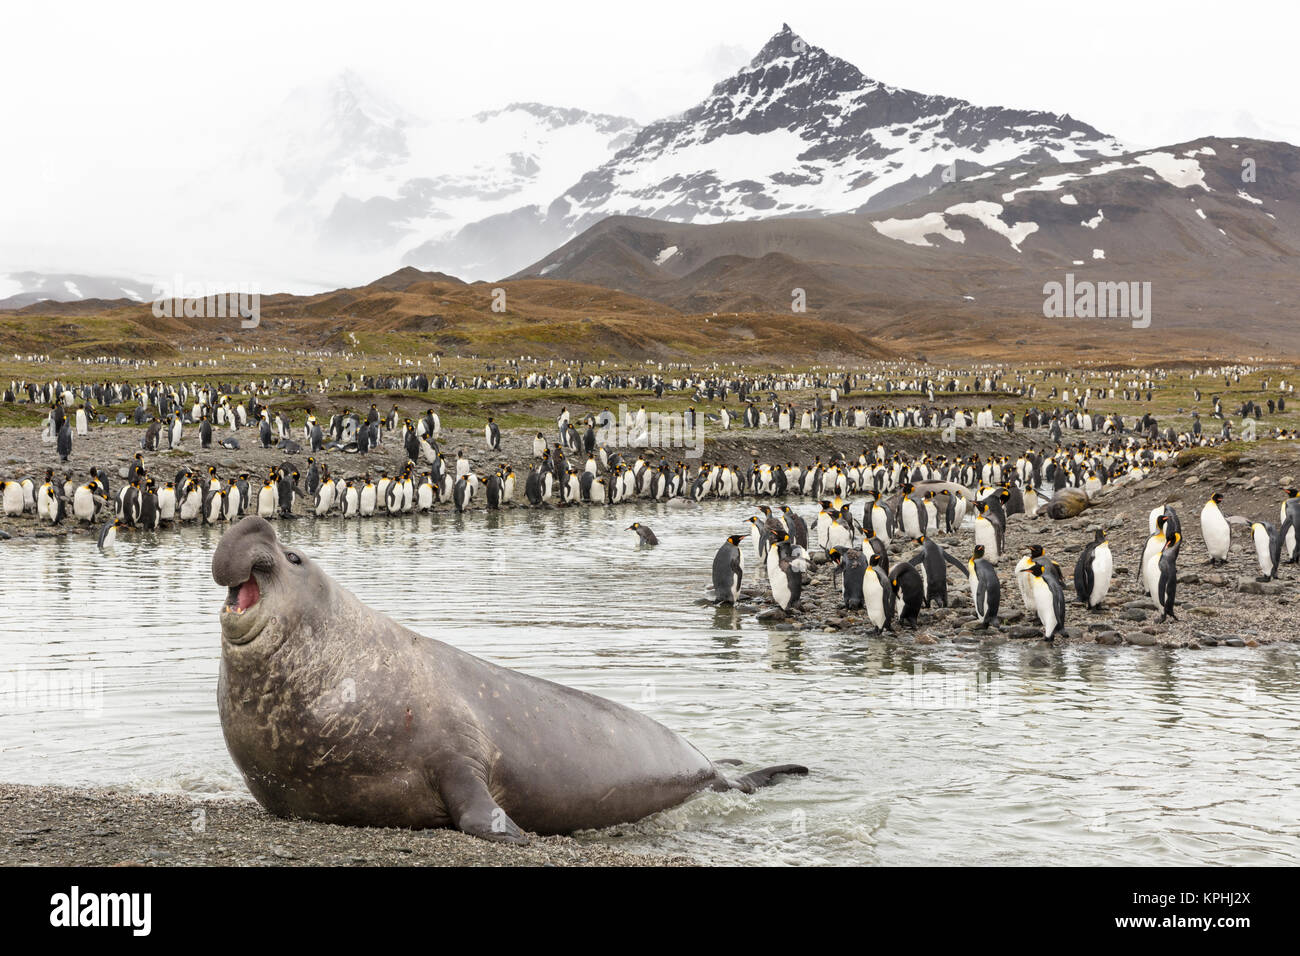 Elephant seal and king penguins at St Andrews Bay, South Georgia Island - Stock Image